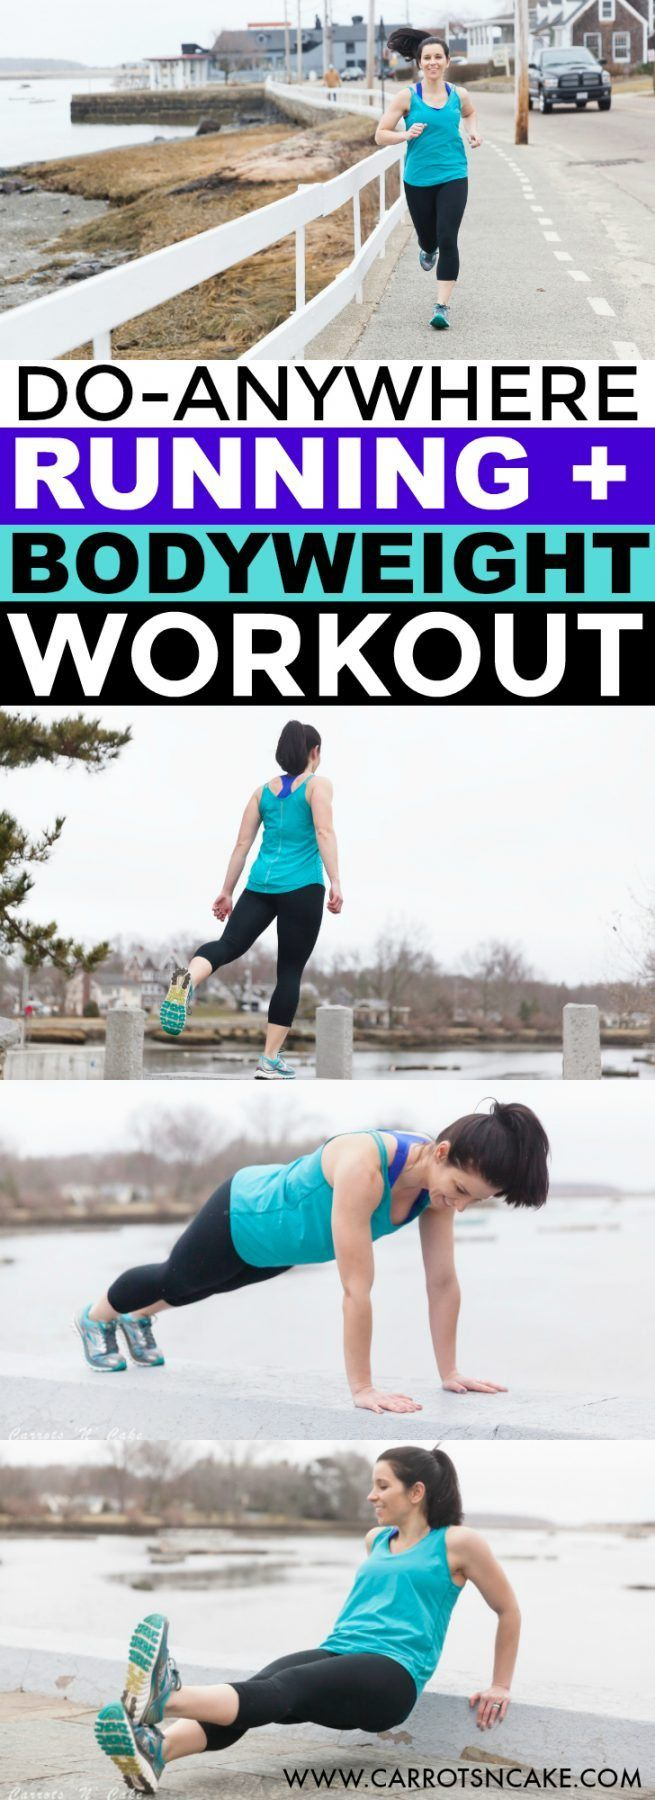 Do-Anywhere Running + Bodyweight Workout http://carrotsncake.com/2017/04/anywhere-running-bodyweight-workout.html @Zappos #Zapposstyle #ad